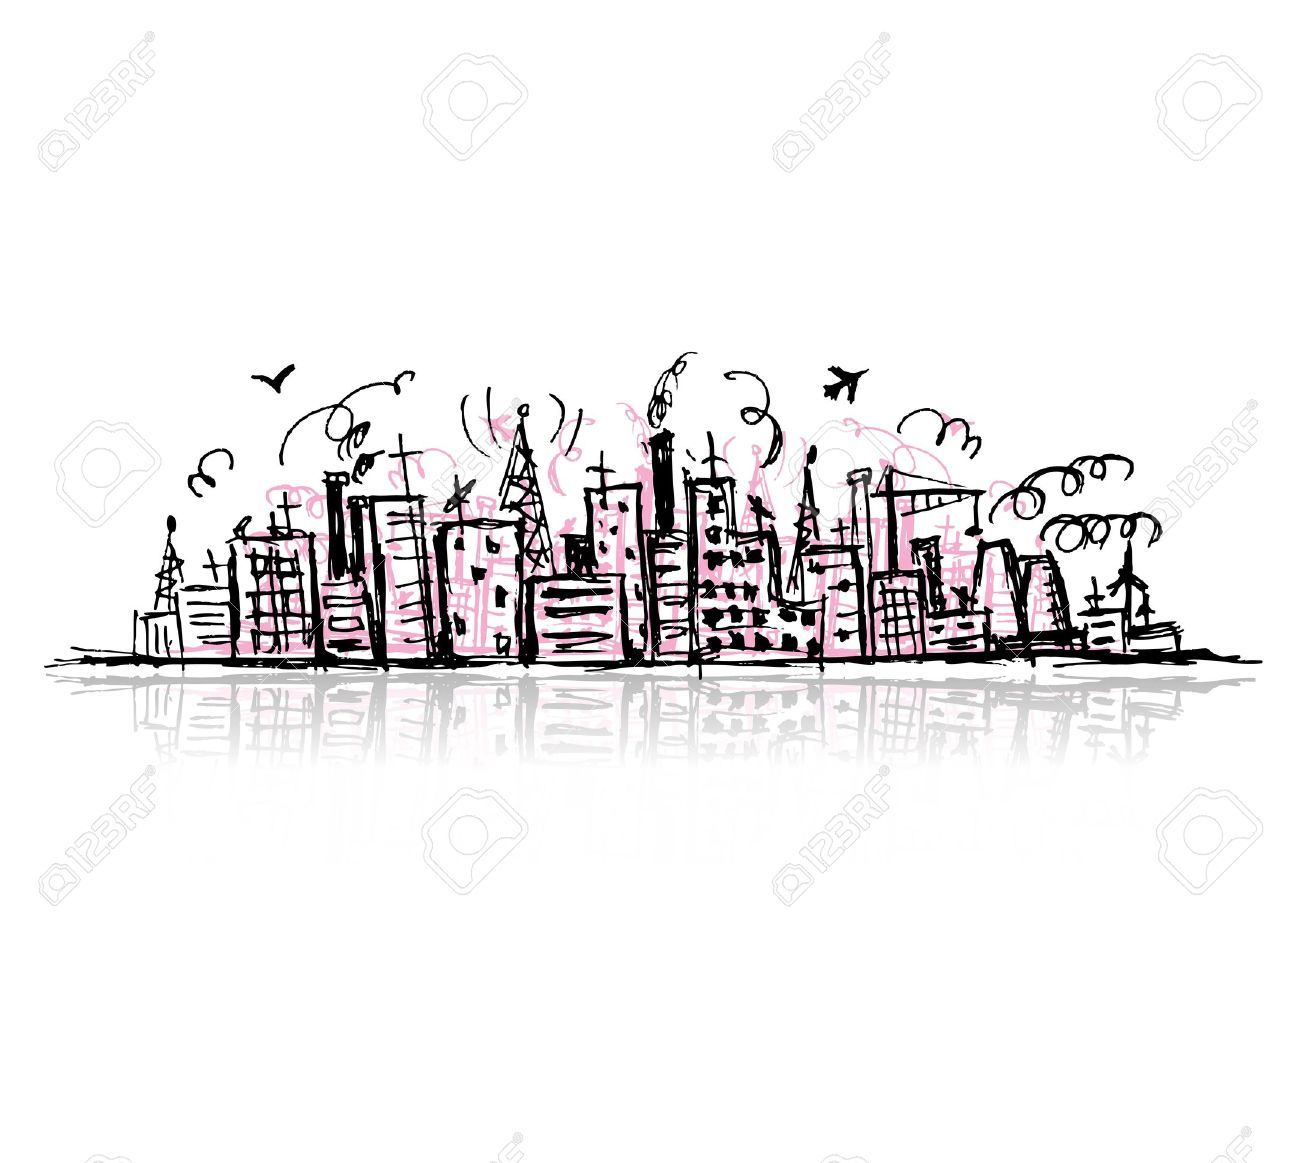 Industrial cityscape, sketch drawing for your design Stock Vector - 10724033